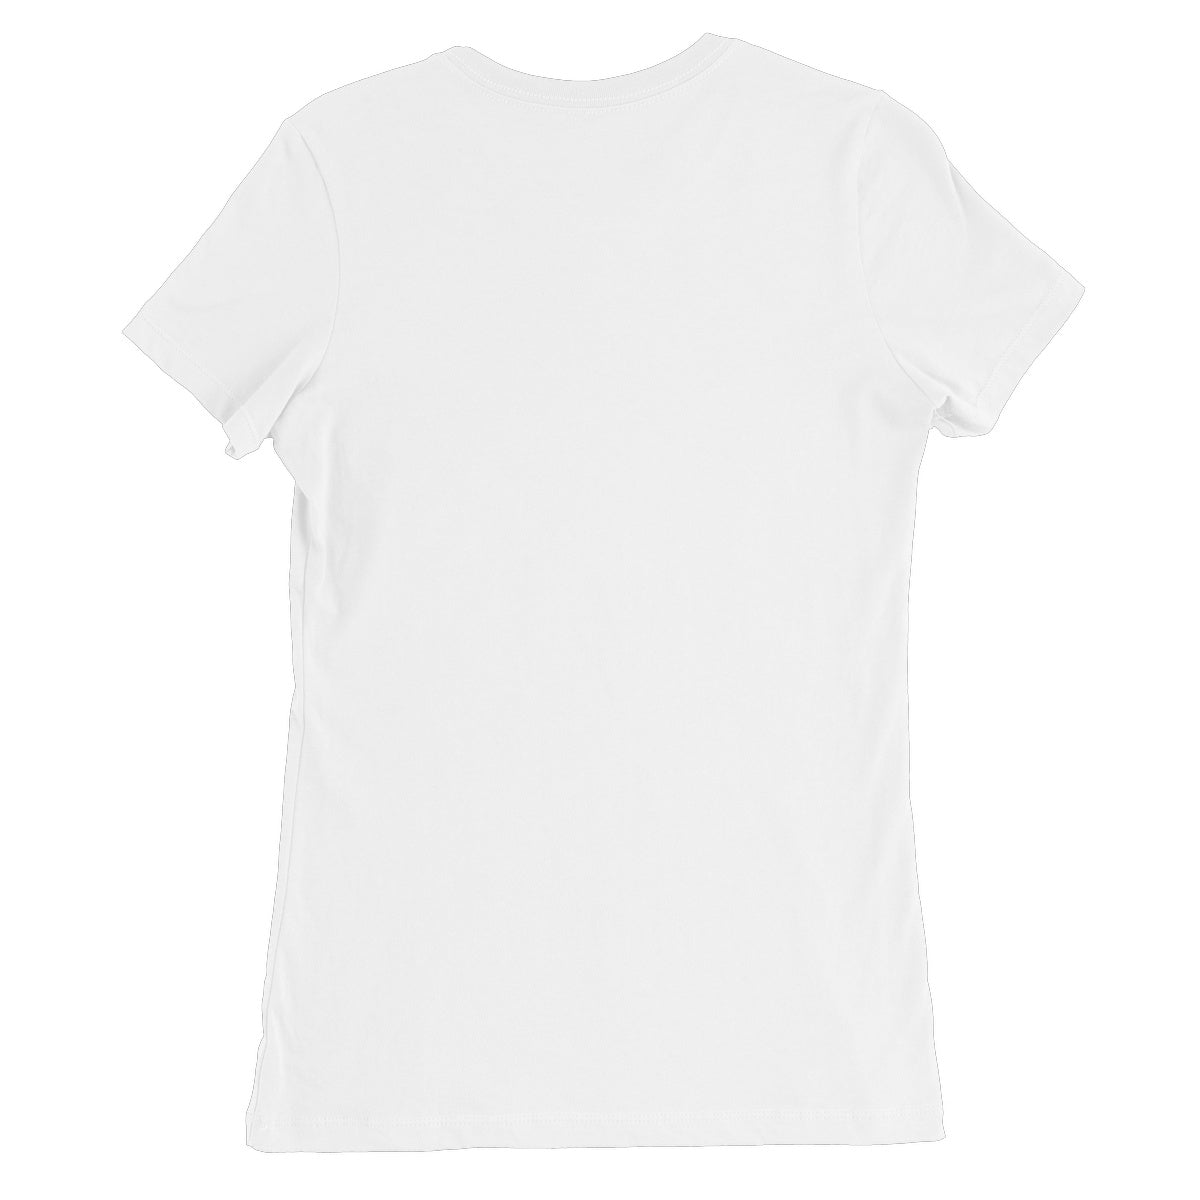 The Good Brothers 'Talk n Shop Women's Favourite T-Shirt